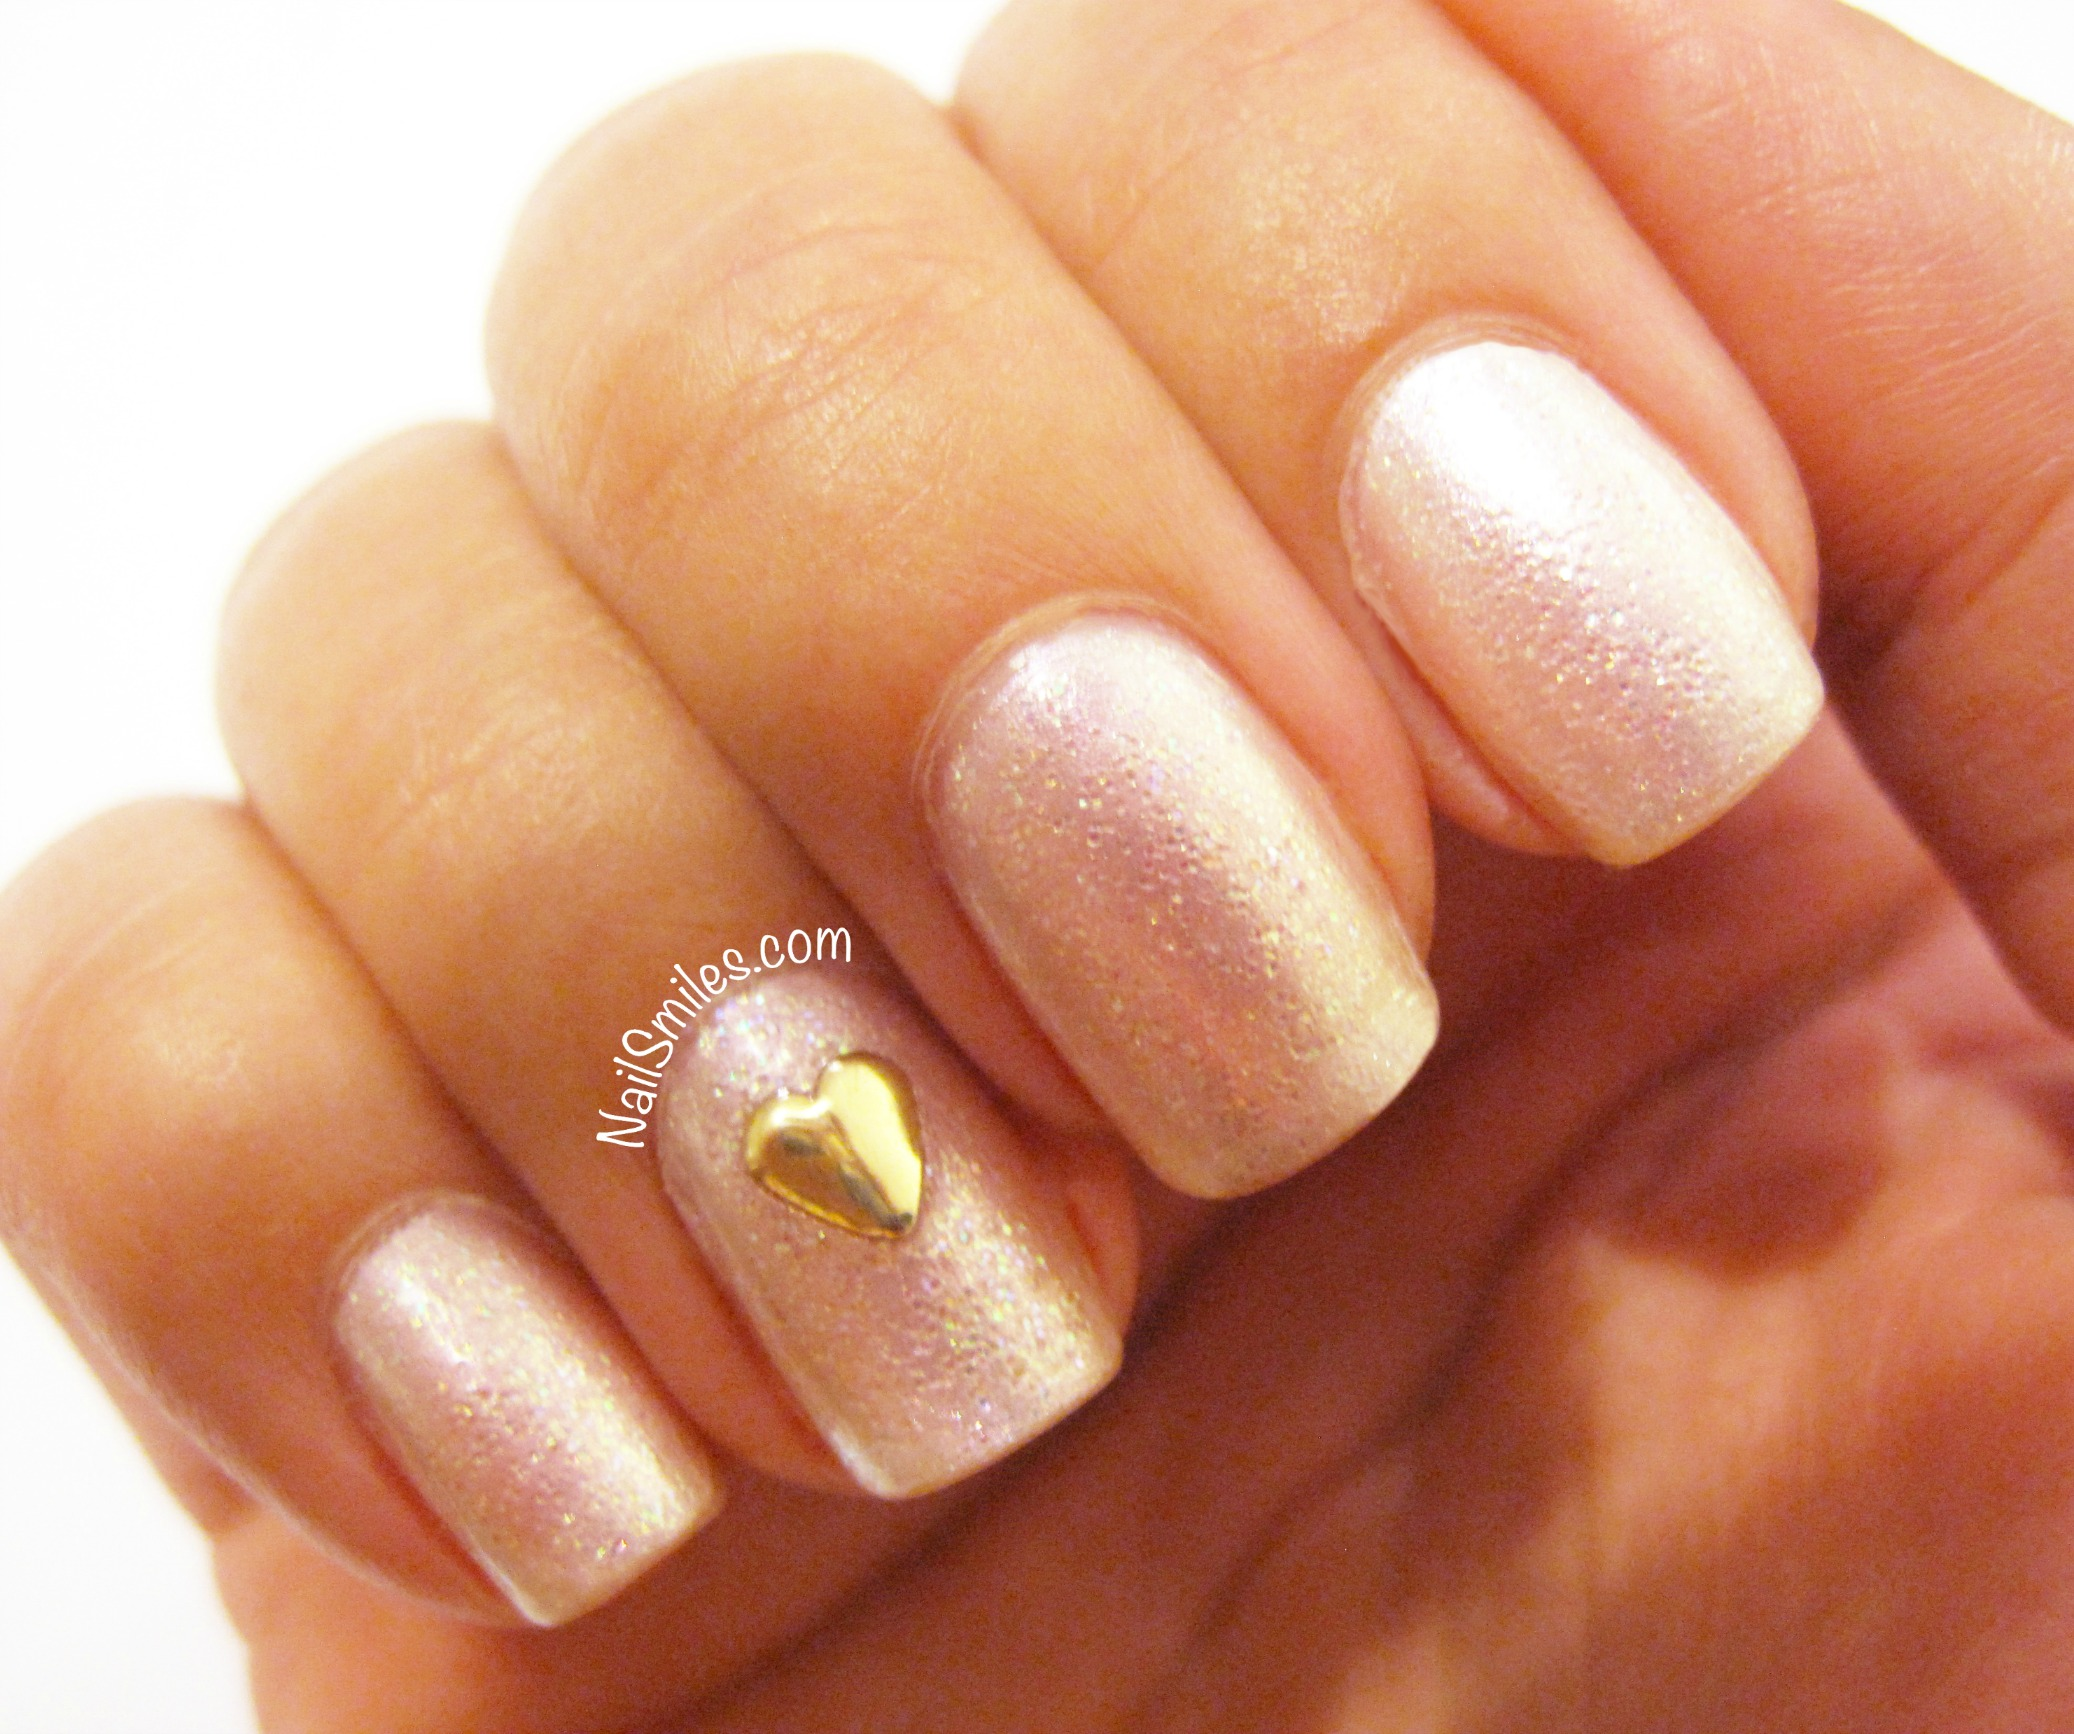 Sparkle nails with gold heart accent 2